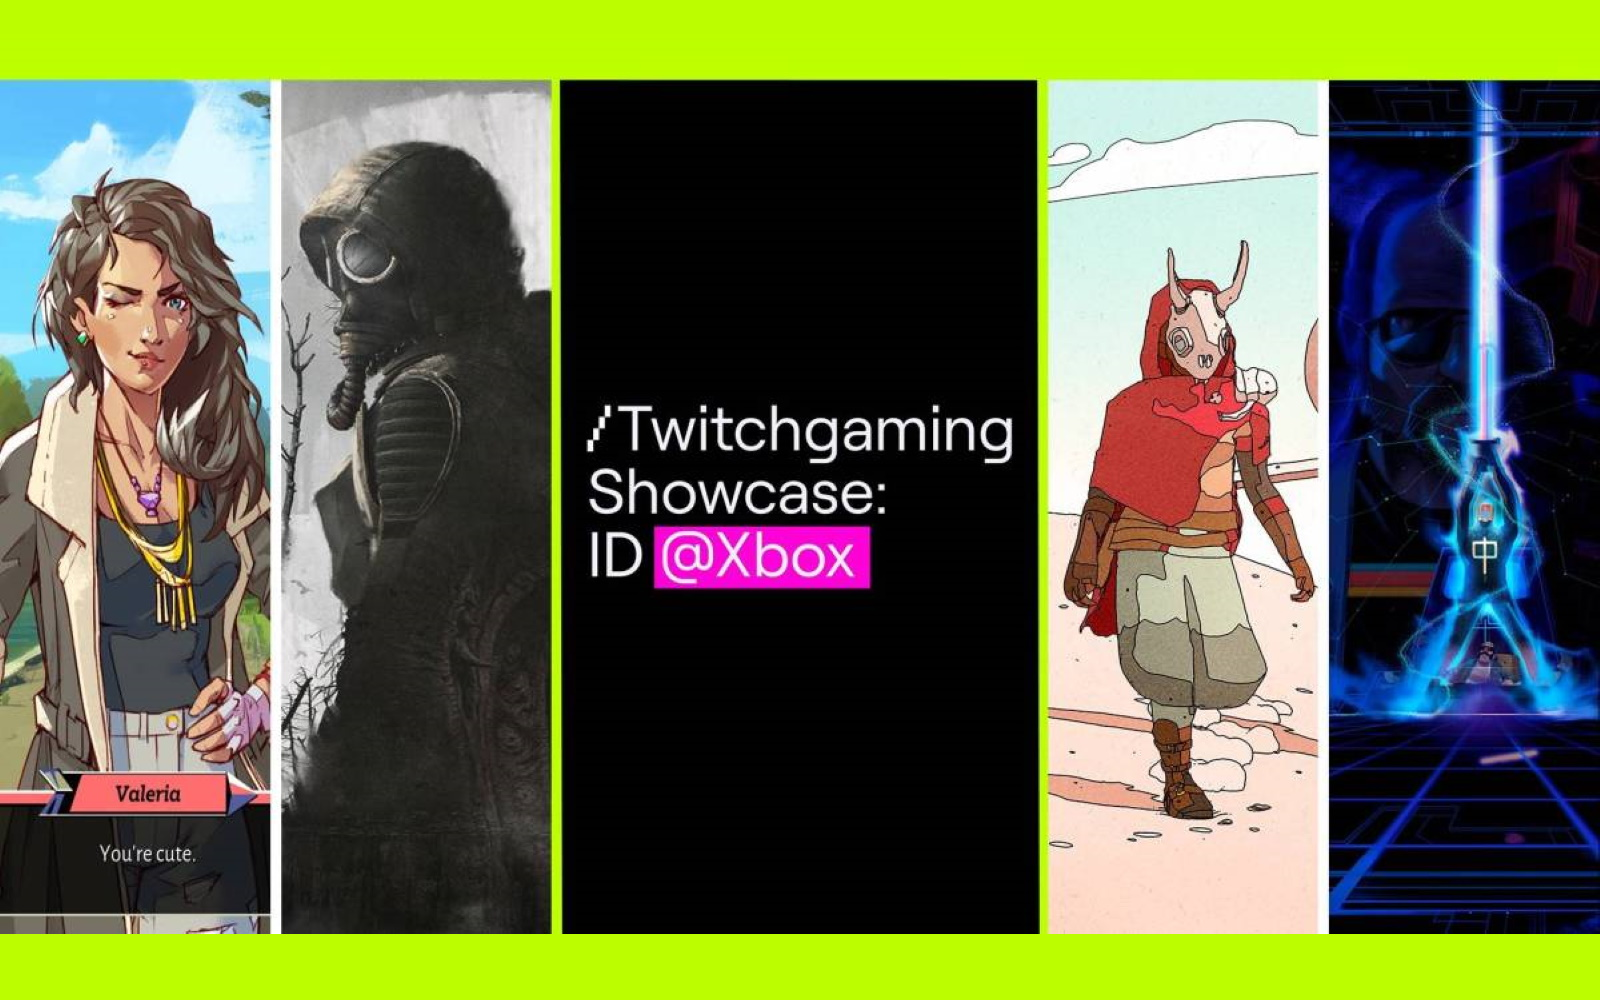 Over 20 Indie Games Coming Game Pass Day 1, Including S.T.A.L.K.E.R. 2